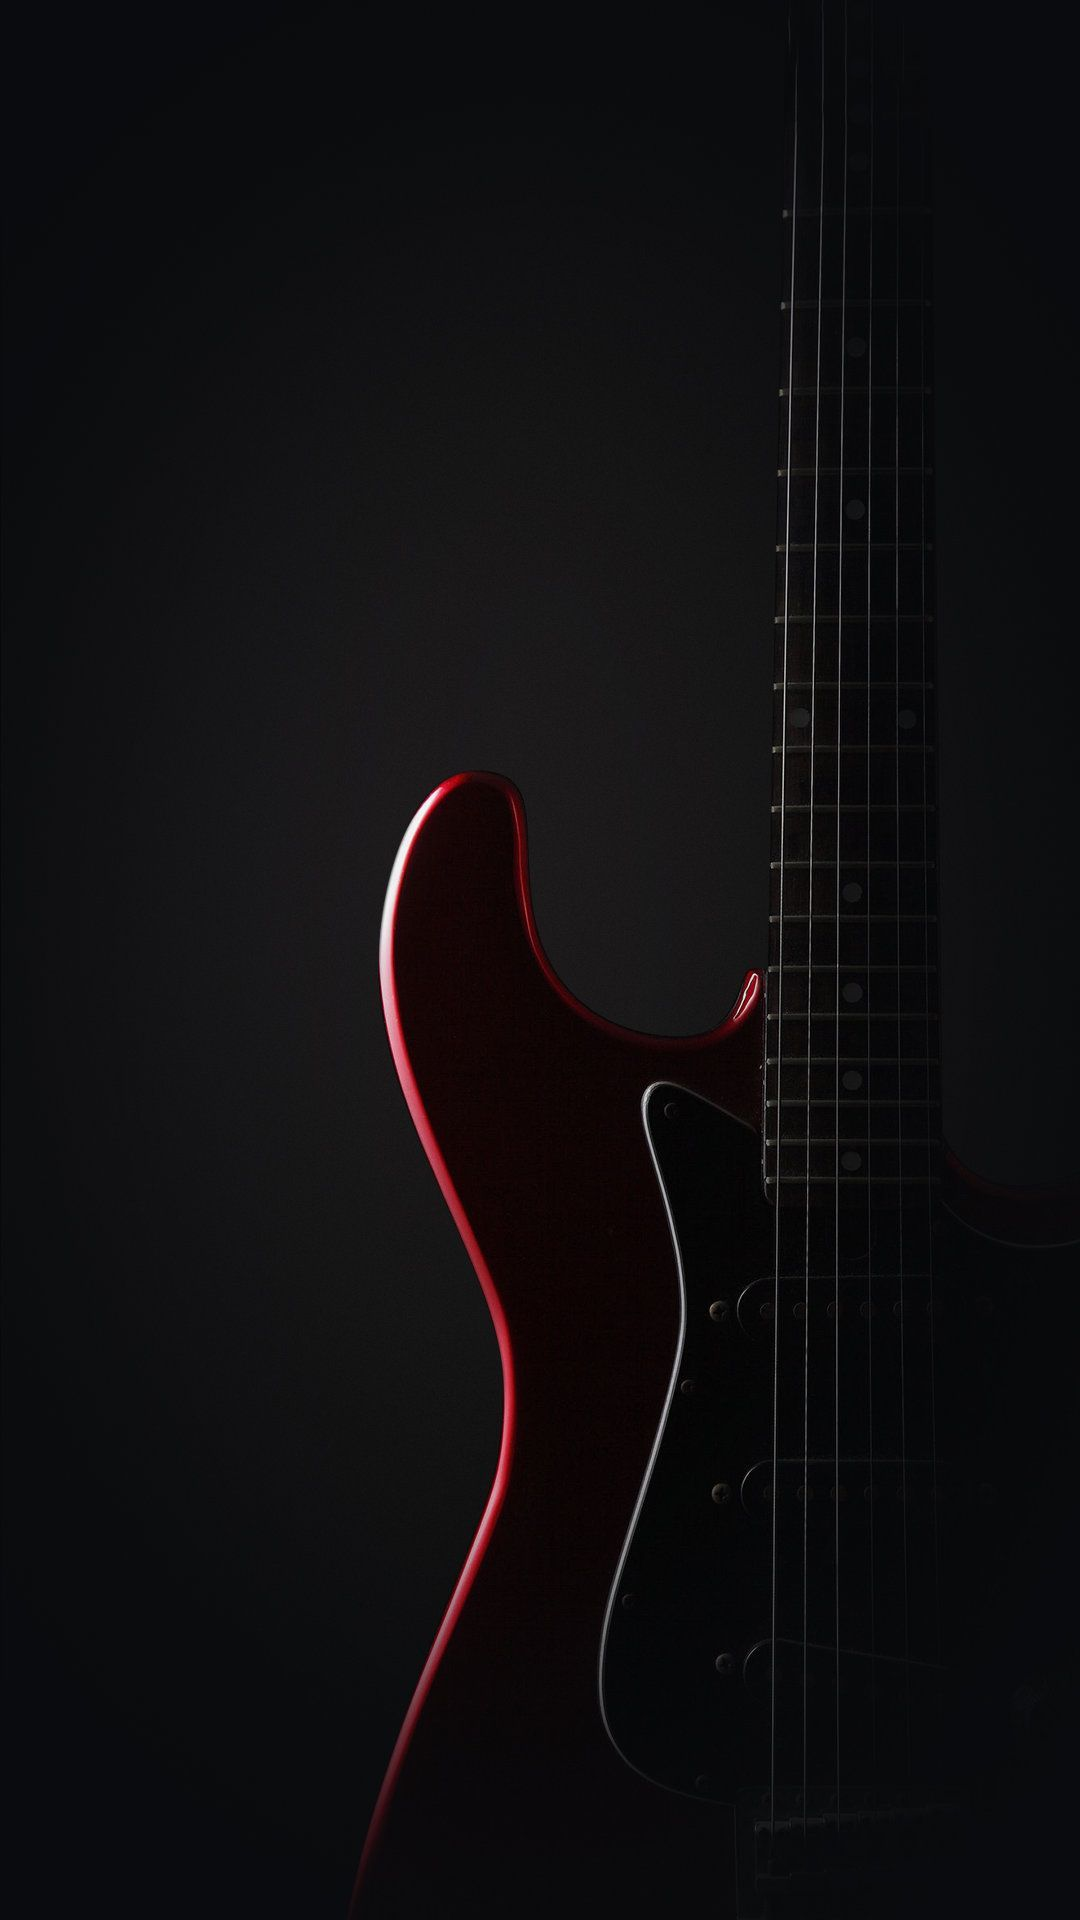 Guitar Smartphone Wallpapers Top Free Guitar Smartphone Backgrounds Wallpaperaccess